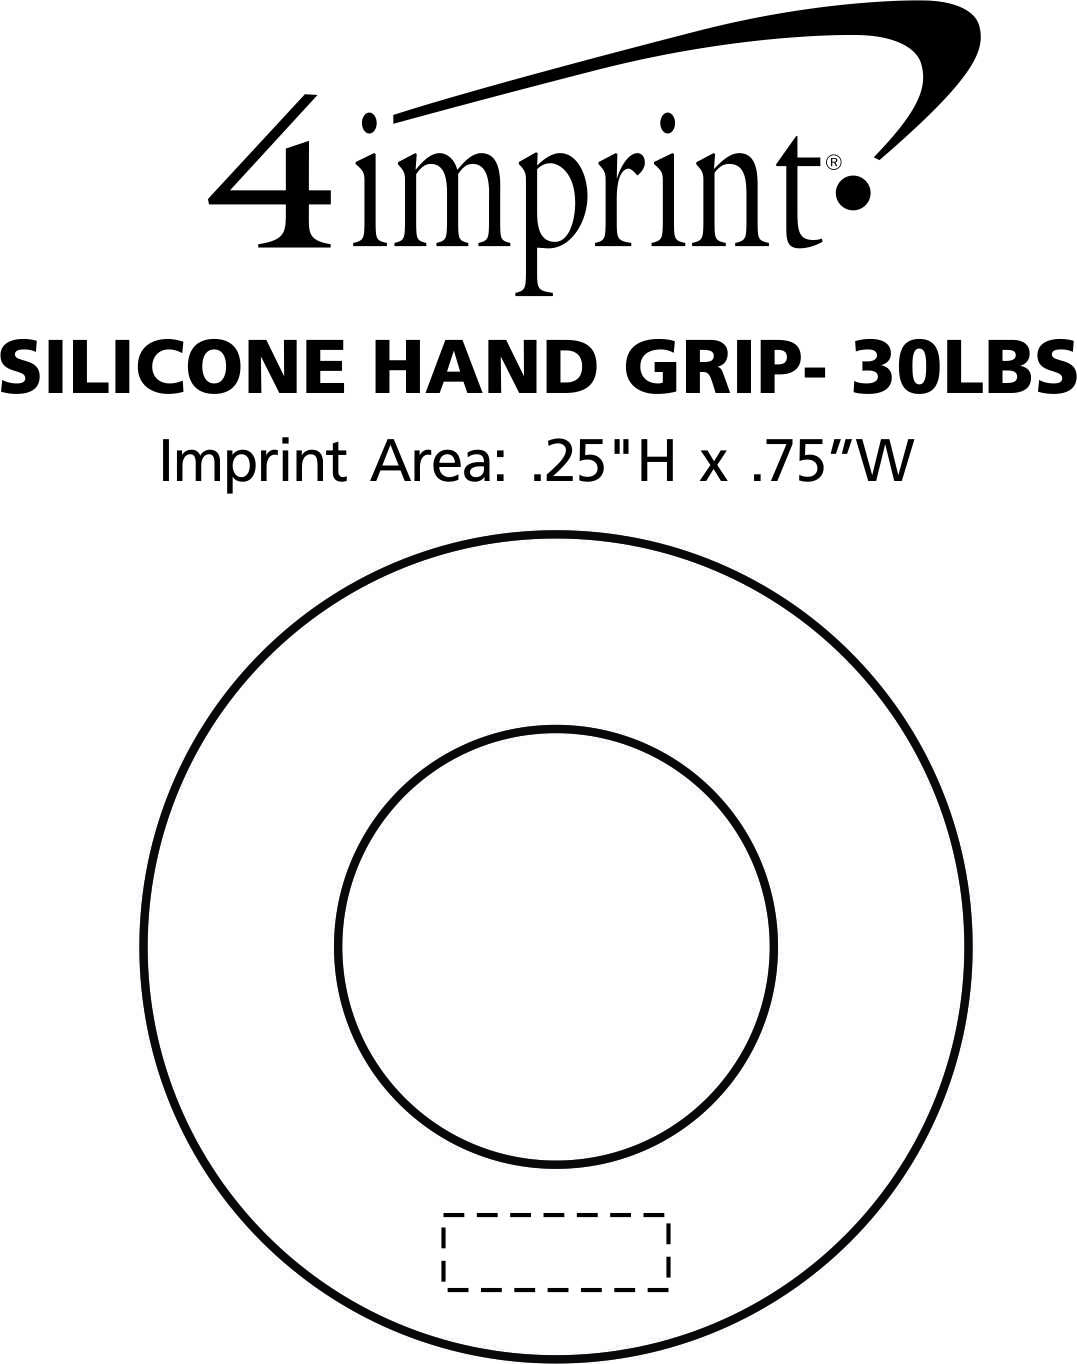 Imprint Area of Silicone Hand Grip - 30 lbs.